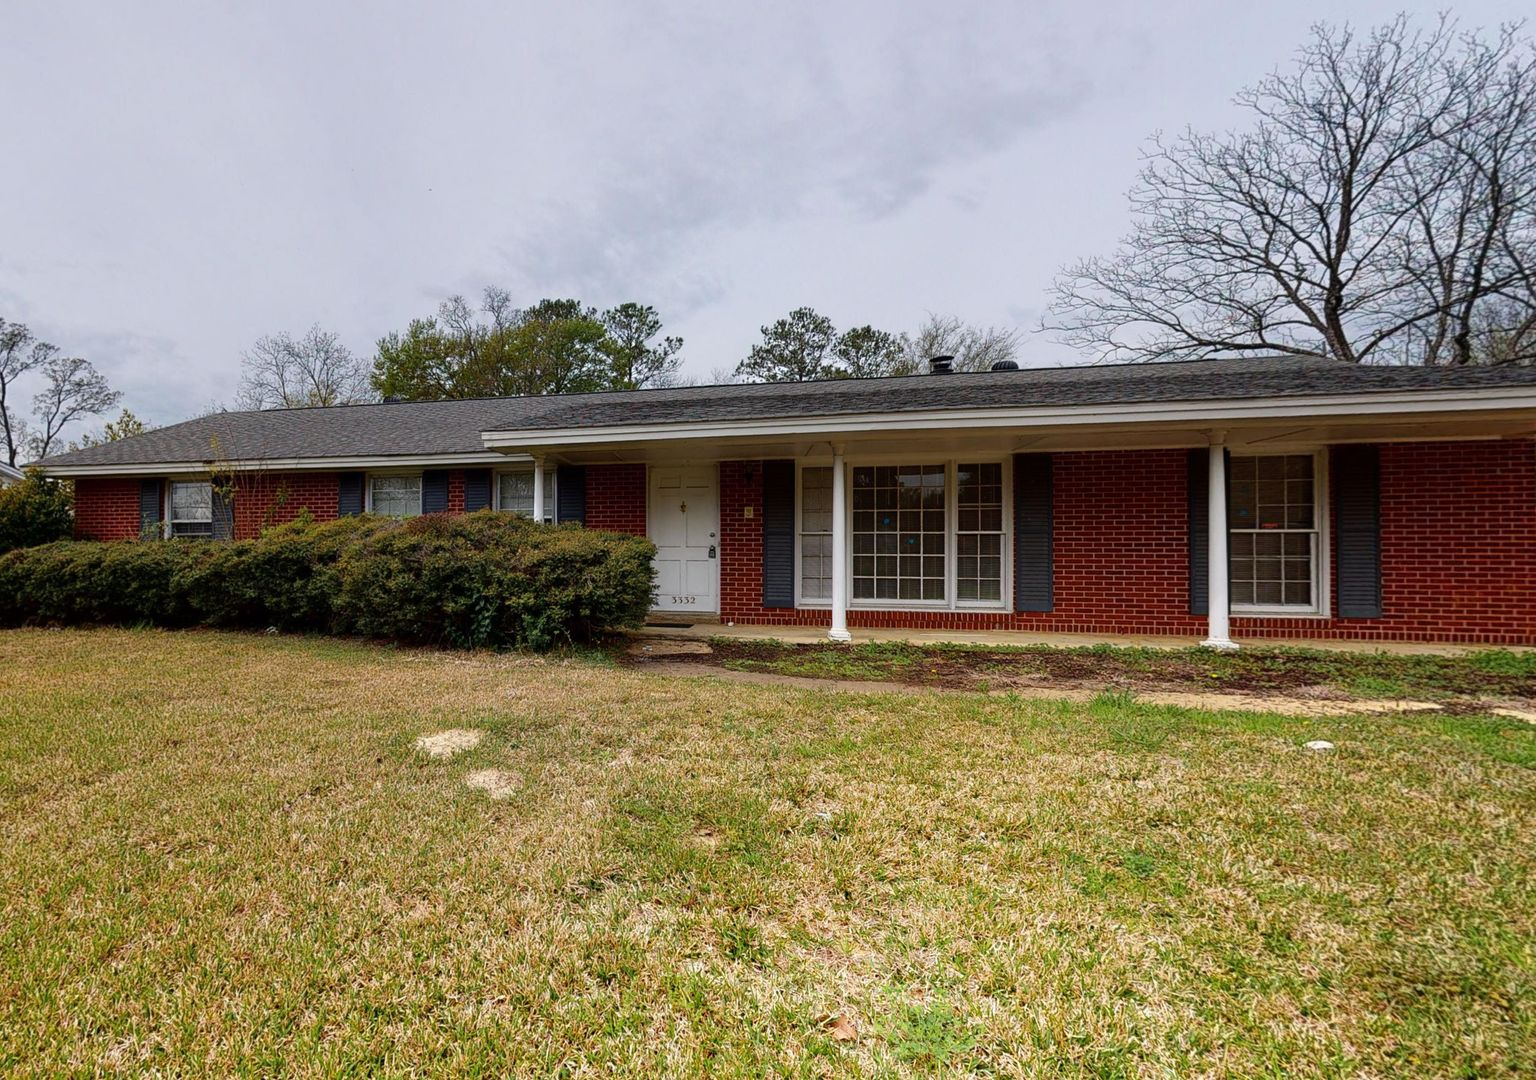 FOR RENT IN MONTGOMERY! 3 BED 2 BATH AT 3332 WALTON DRIVE